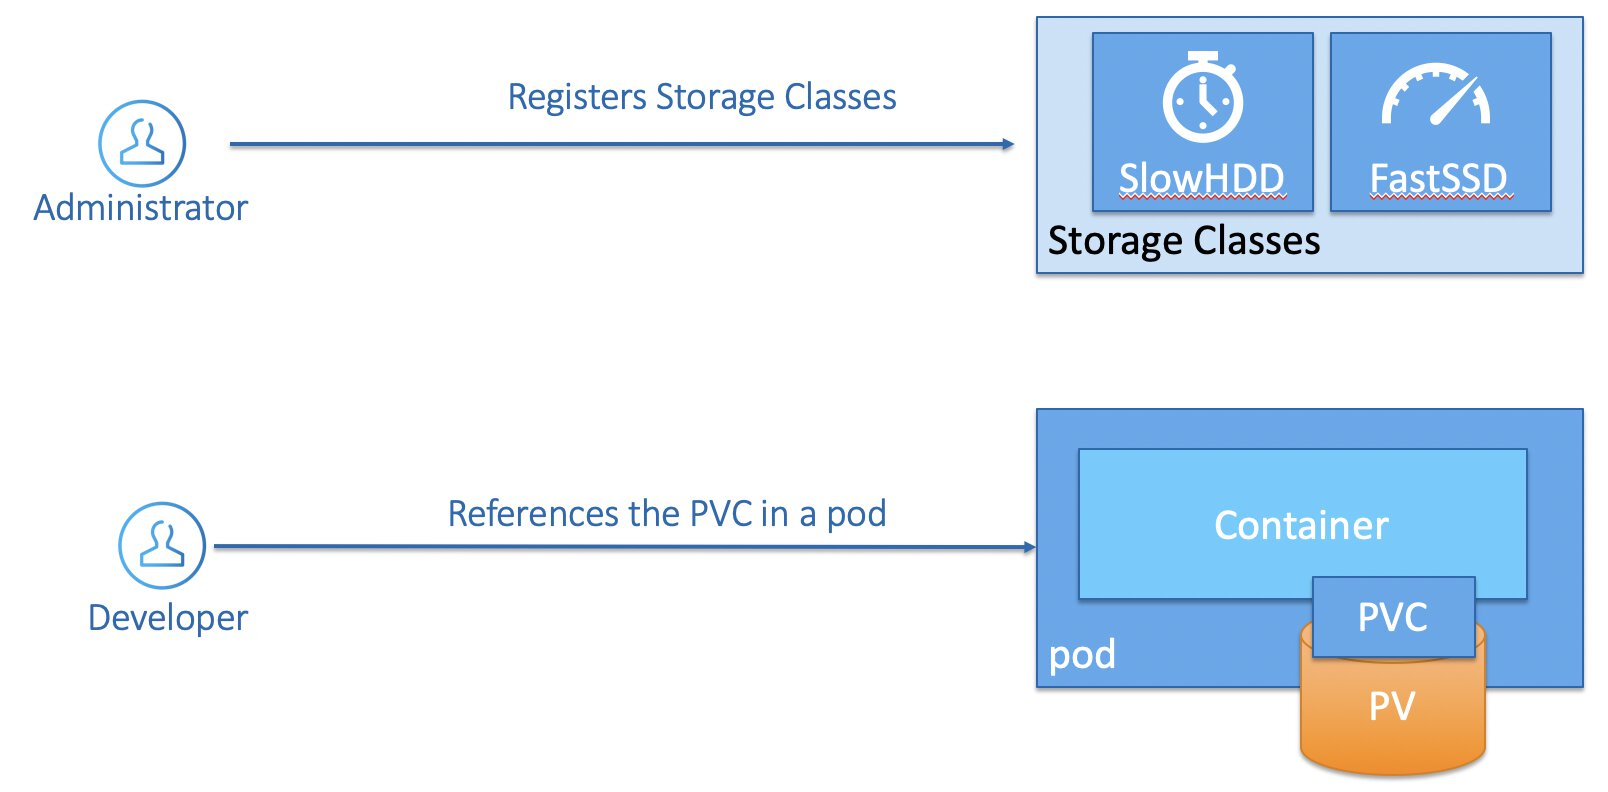 Dynamic Storage Provisioning - PV & PVC with user referencing the PVC in a pod.